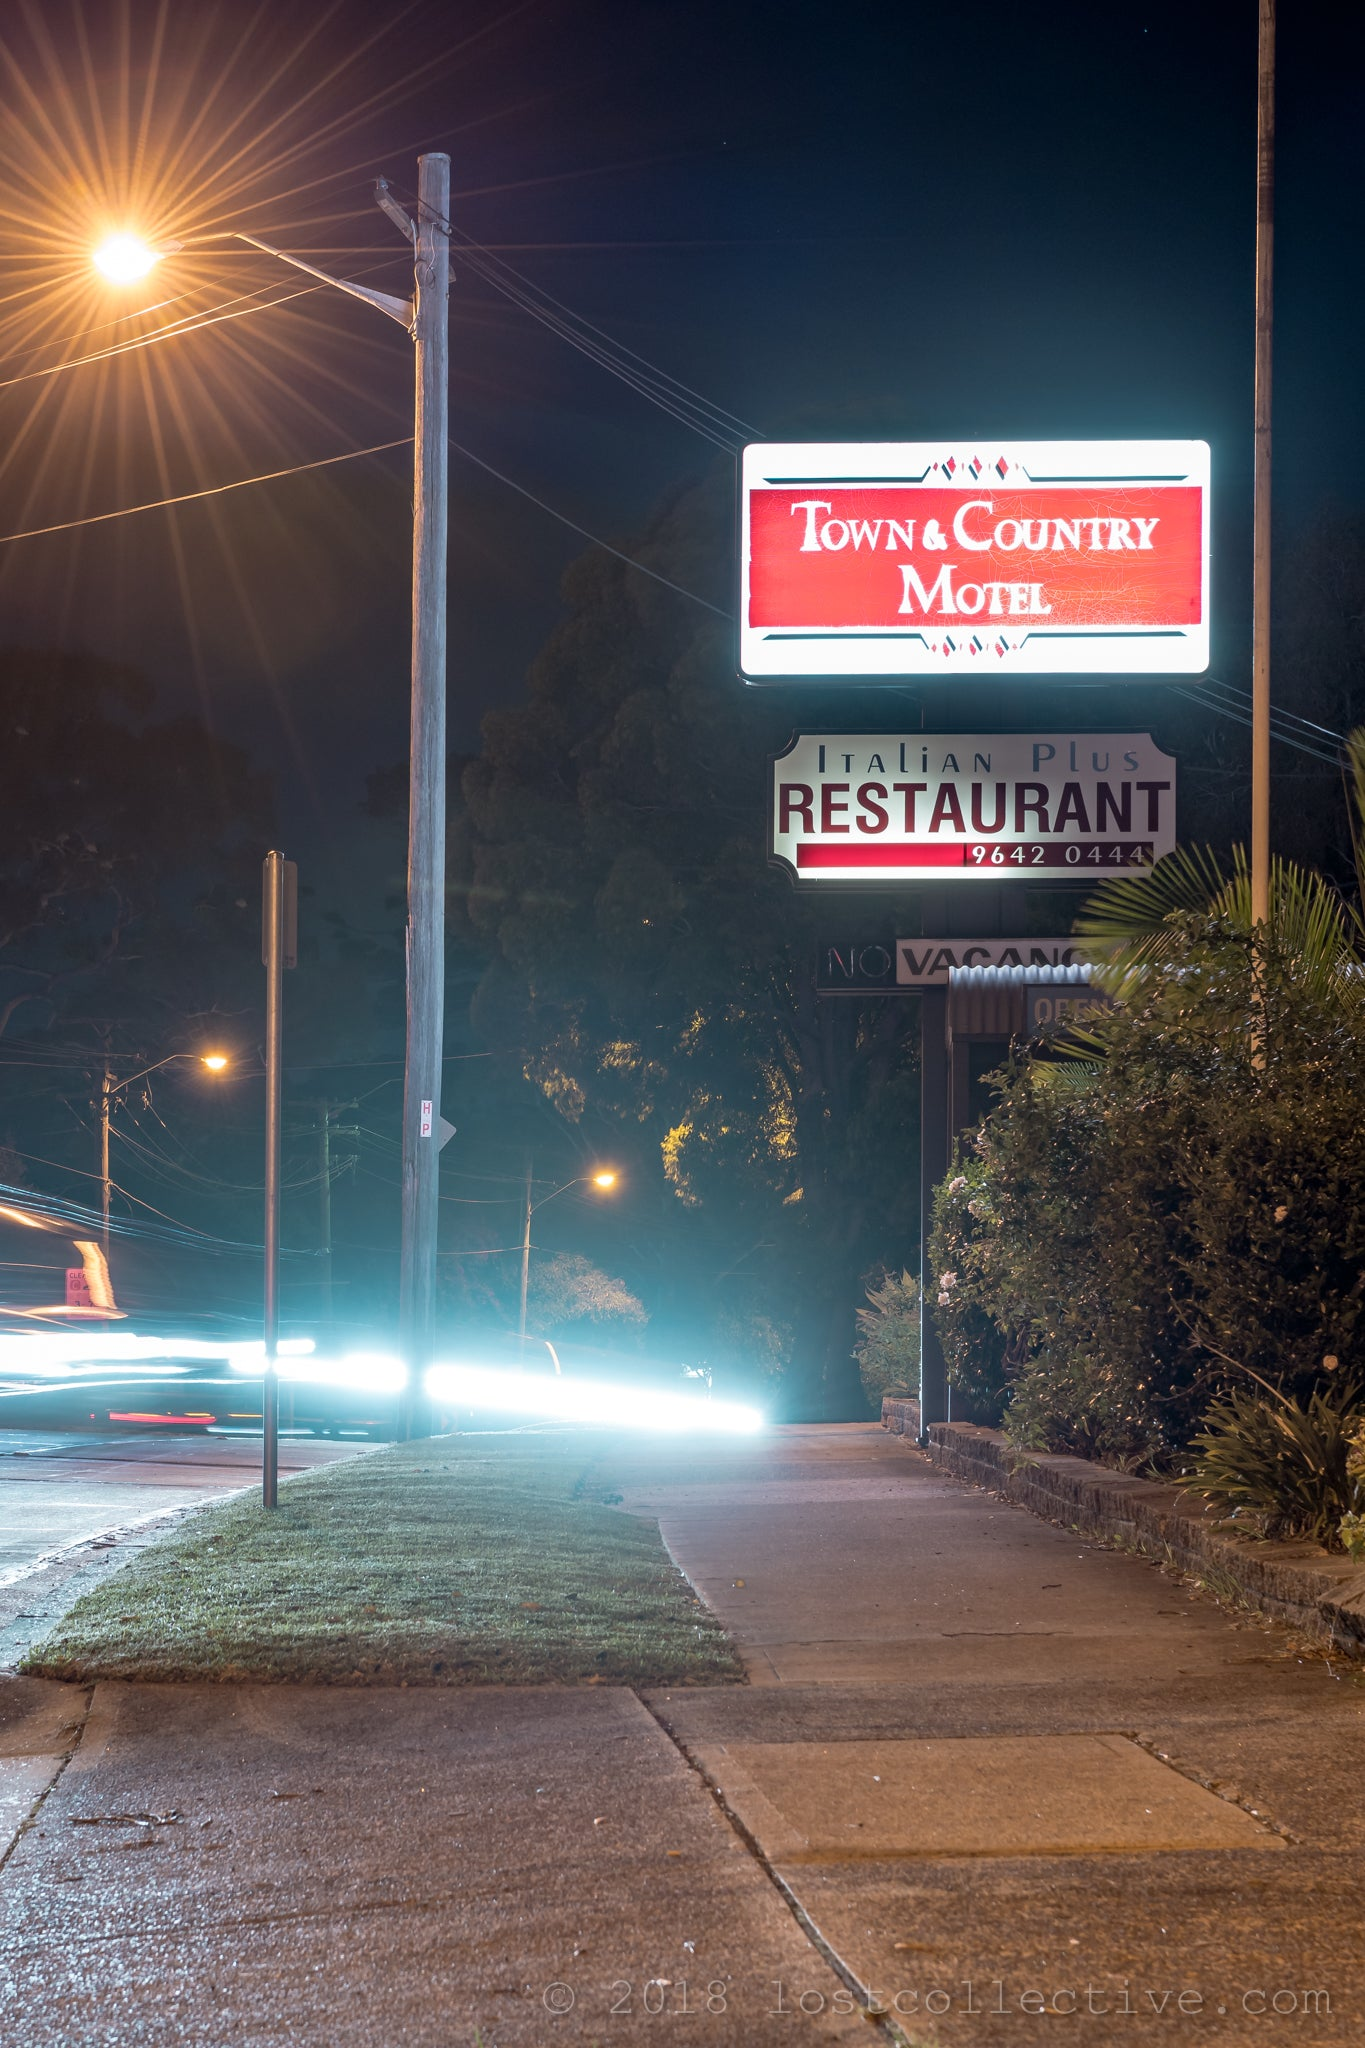 the town and country motel sign at night from the roadside